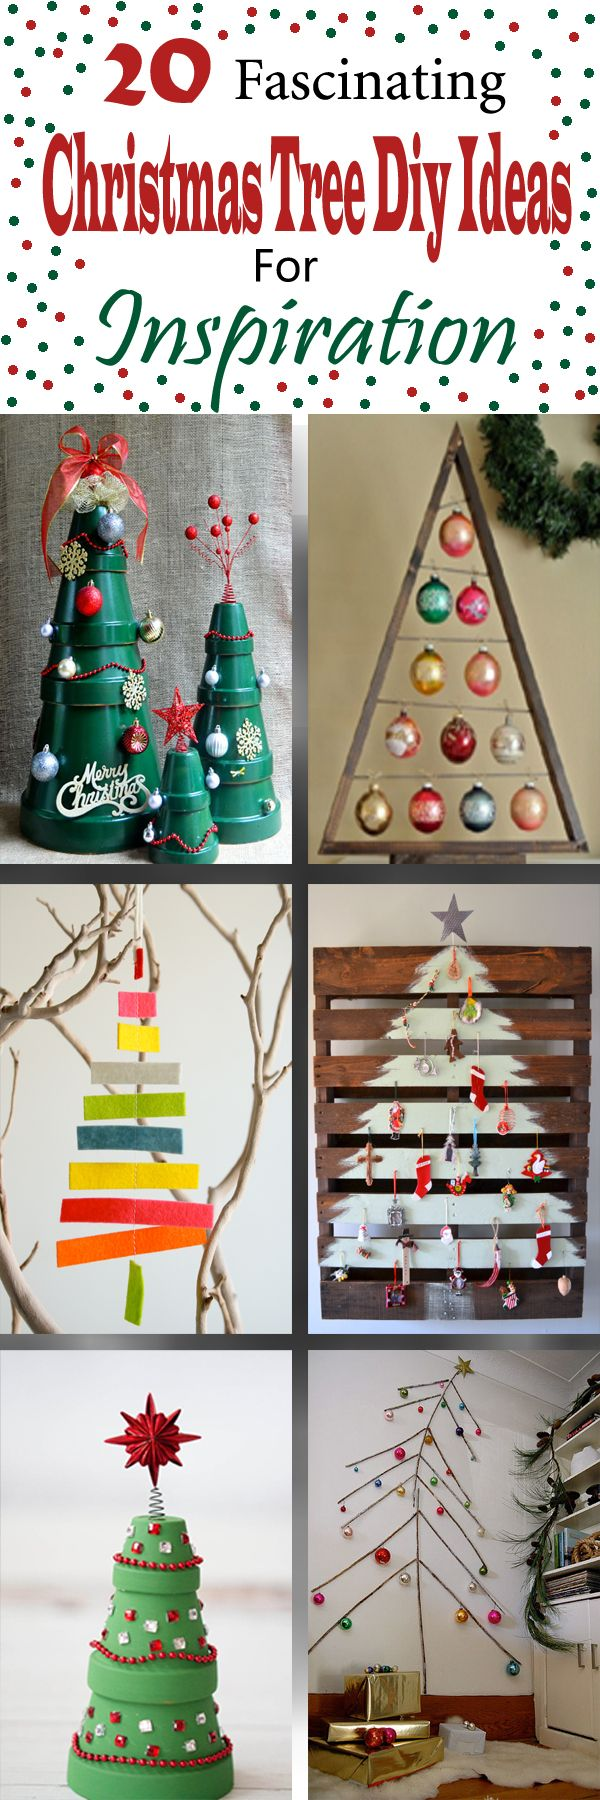 20 Fascinating Christmas Tree Diy Ideas For